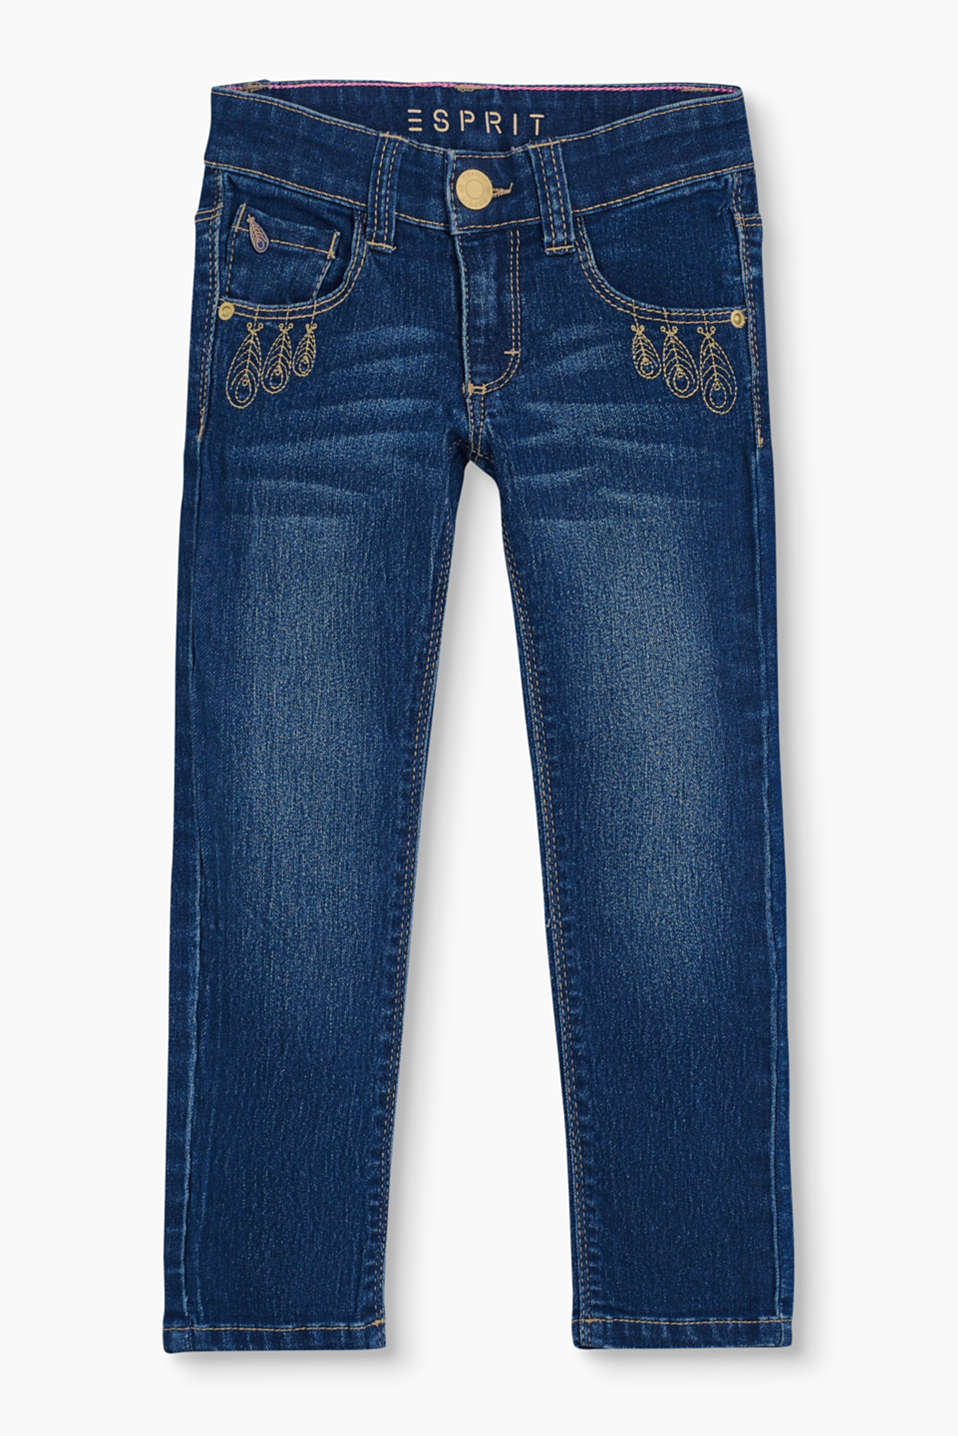 Esprit - Stretch jeans with feather embroidery